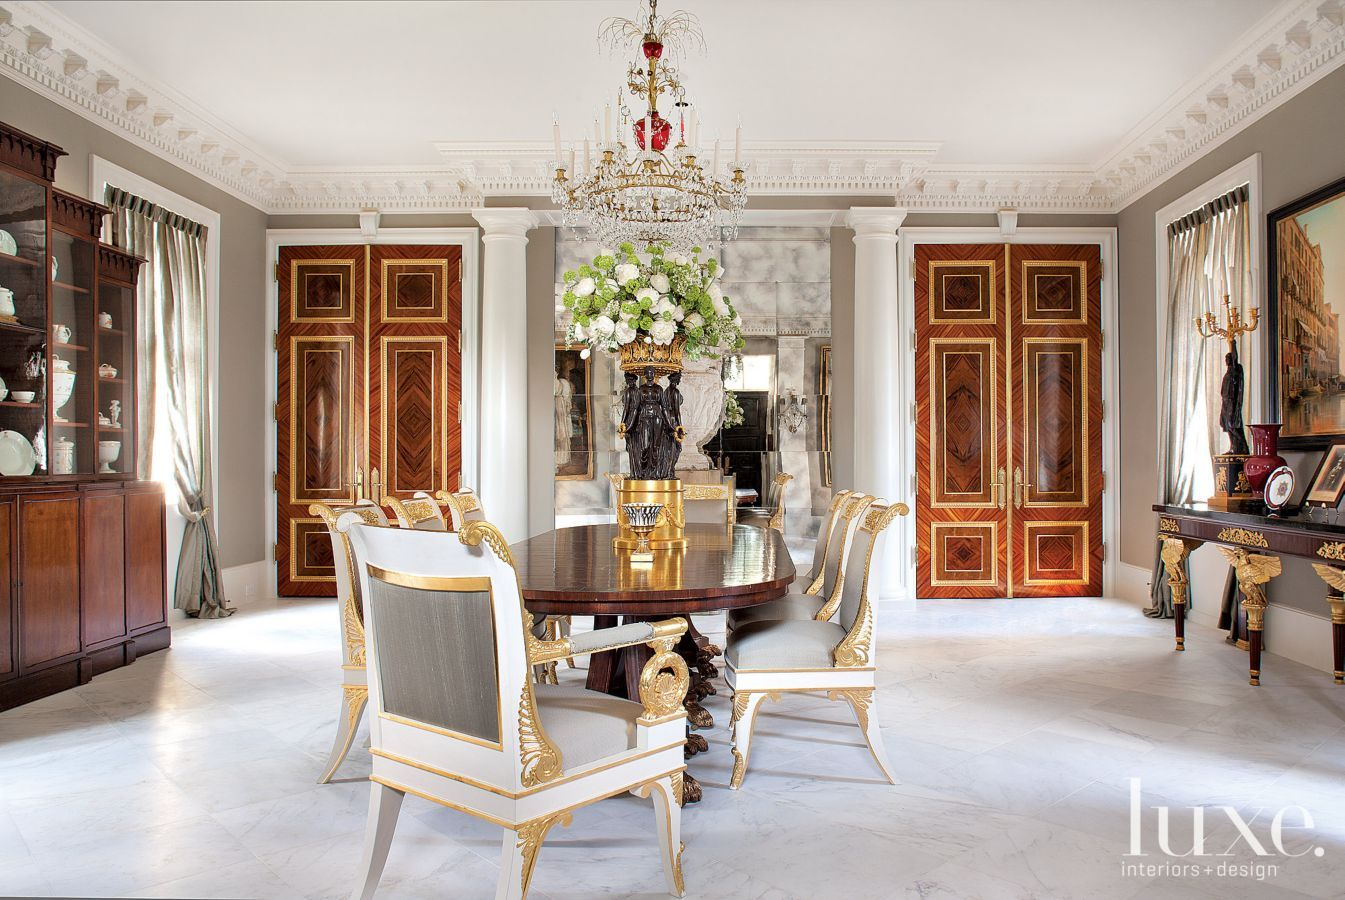 An Ornate Federal Style Houston Home LuxeWorthy Design Insight